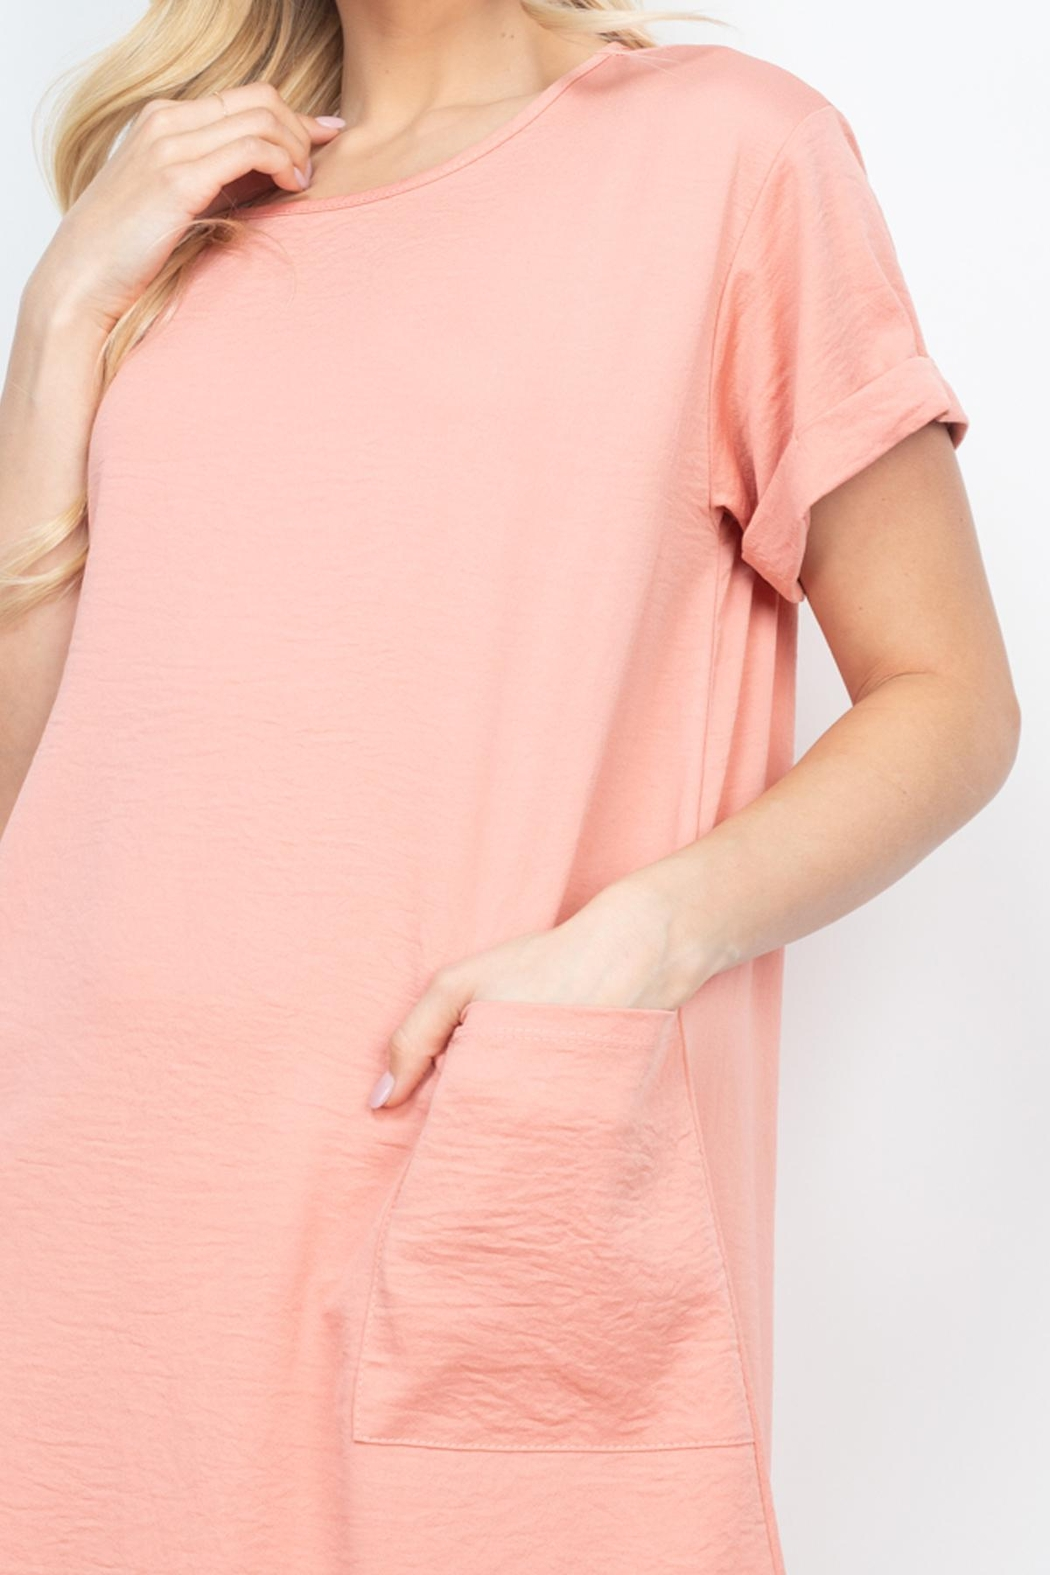 Riah Fashion Rolled-Sleeve-Front-Pocket-Solid-Dress - Front Cropped Image